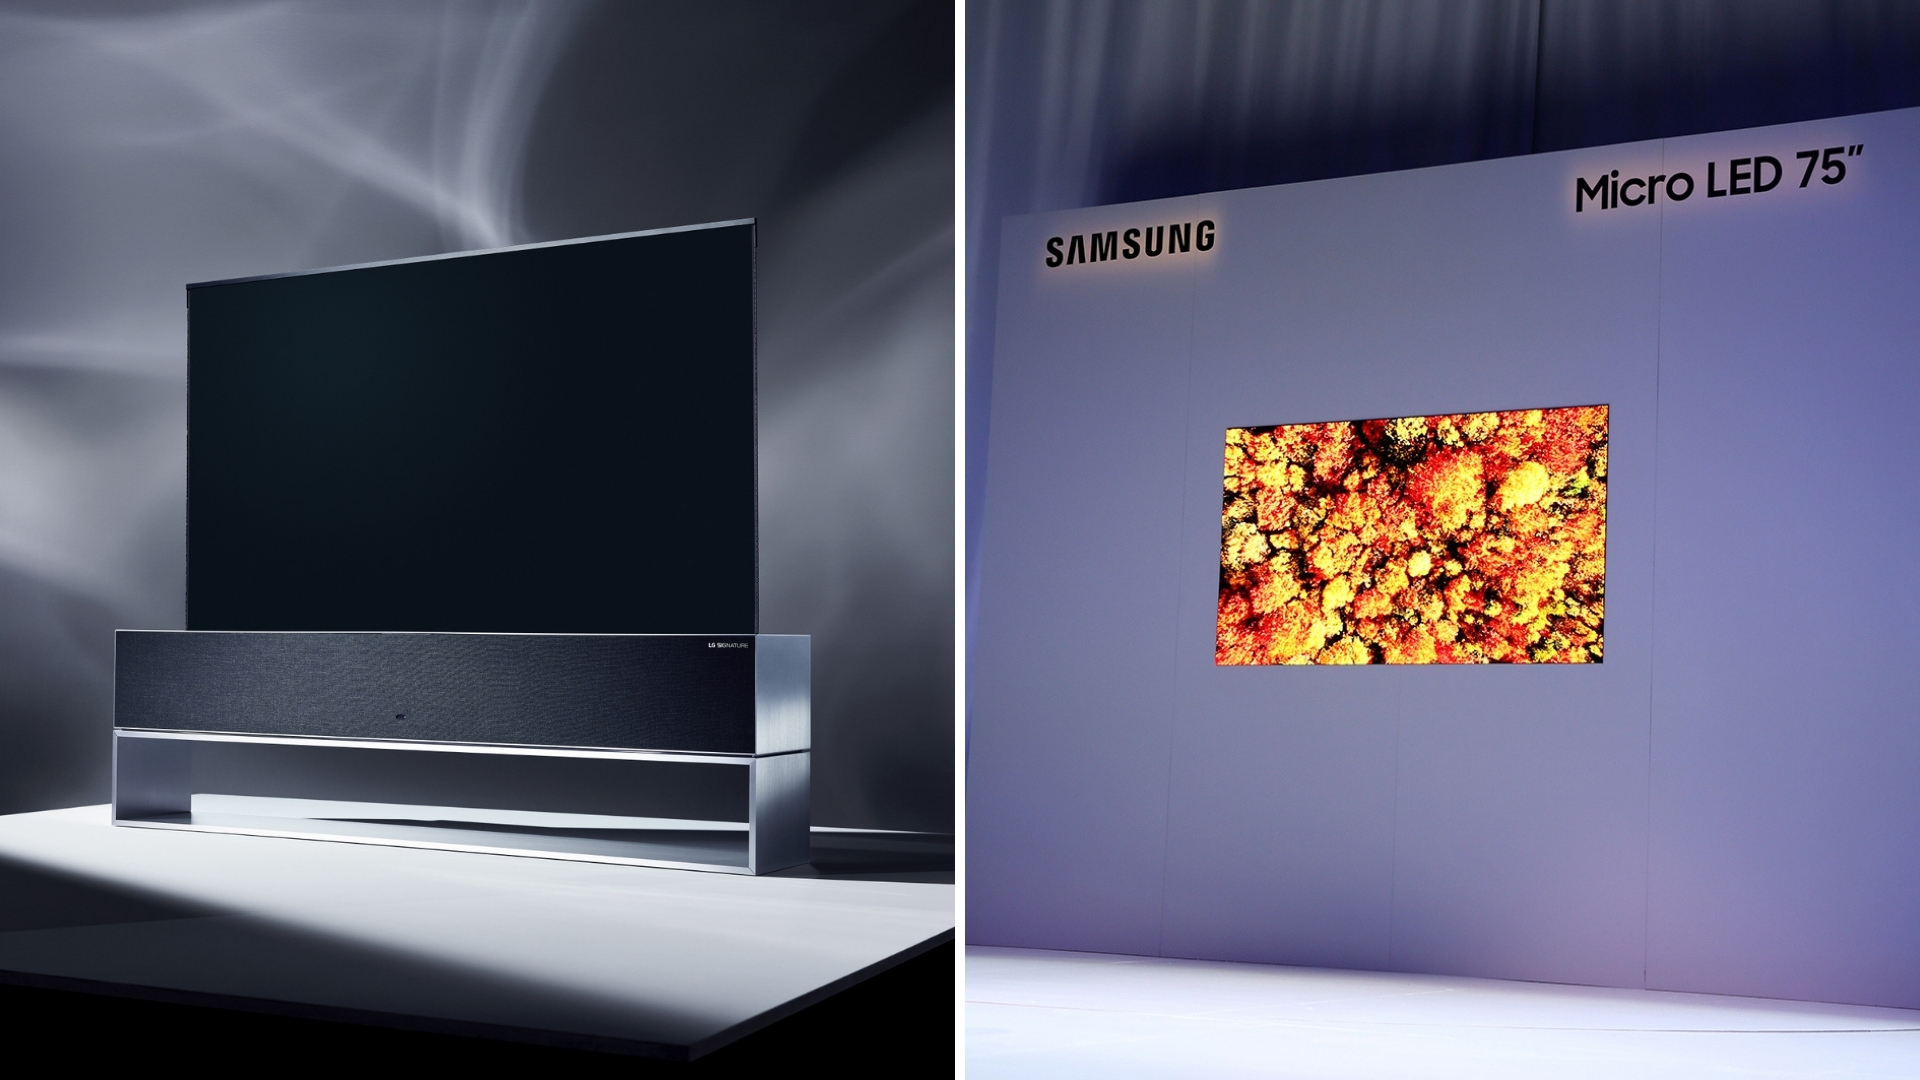 CES 2019: LG Rollable OLED TV Rivals Samsung's 75-inch MicroLED TV